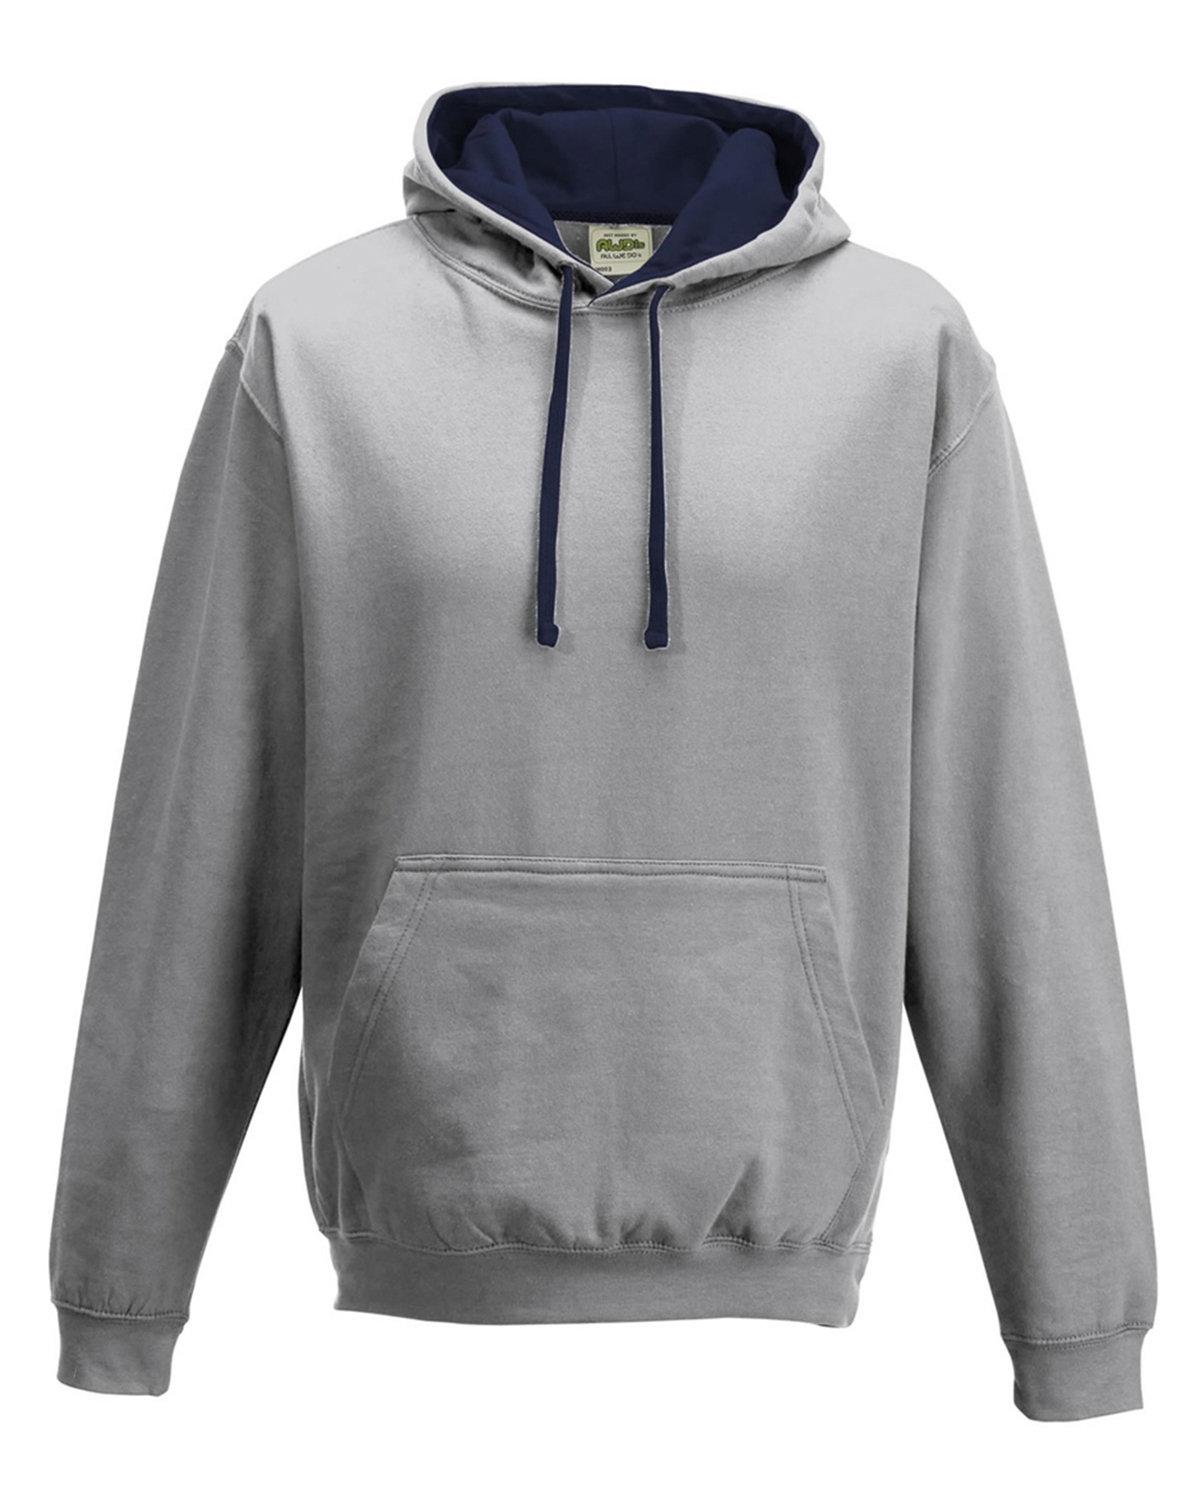 Just Hoods By AWDis Adult 80/20 Midweight Varsity Contrast Hooded Sweatshirt HTH GRY/ FRN NVY